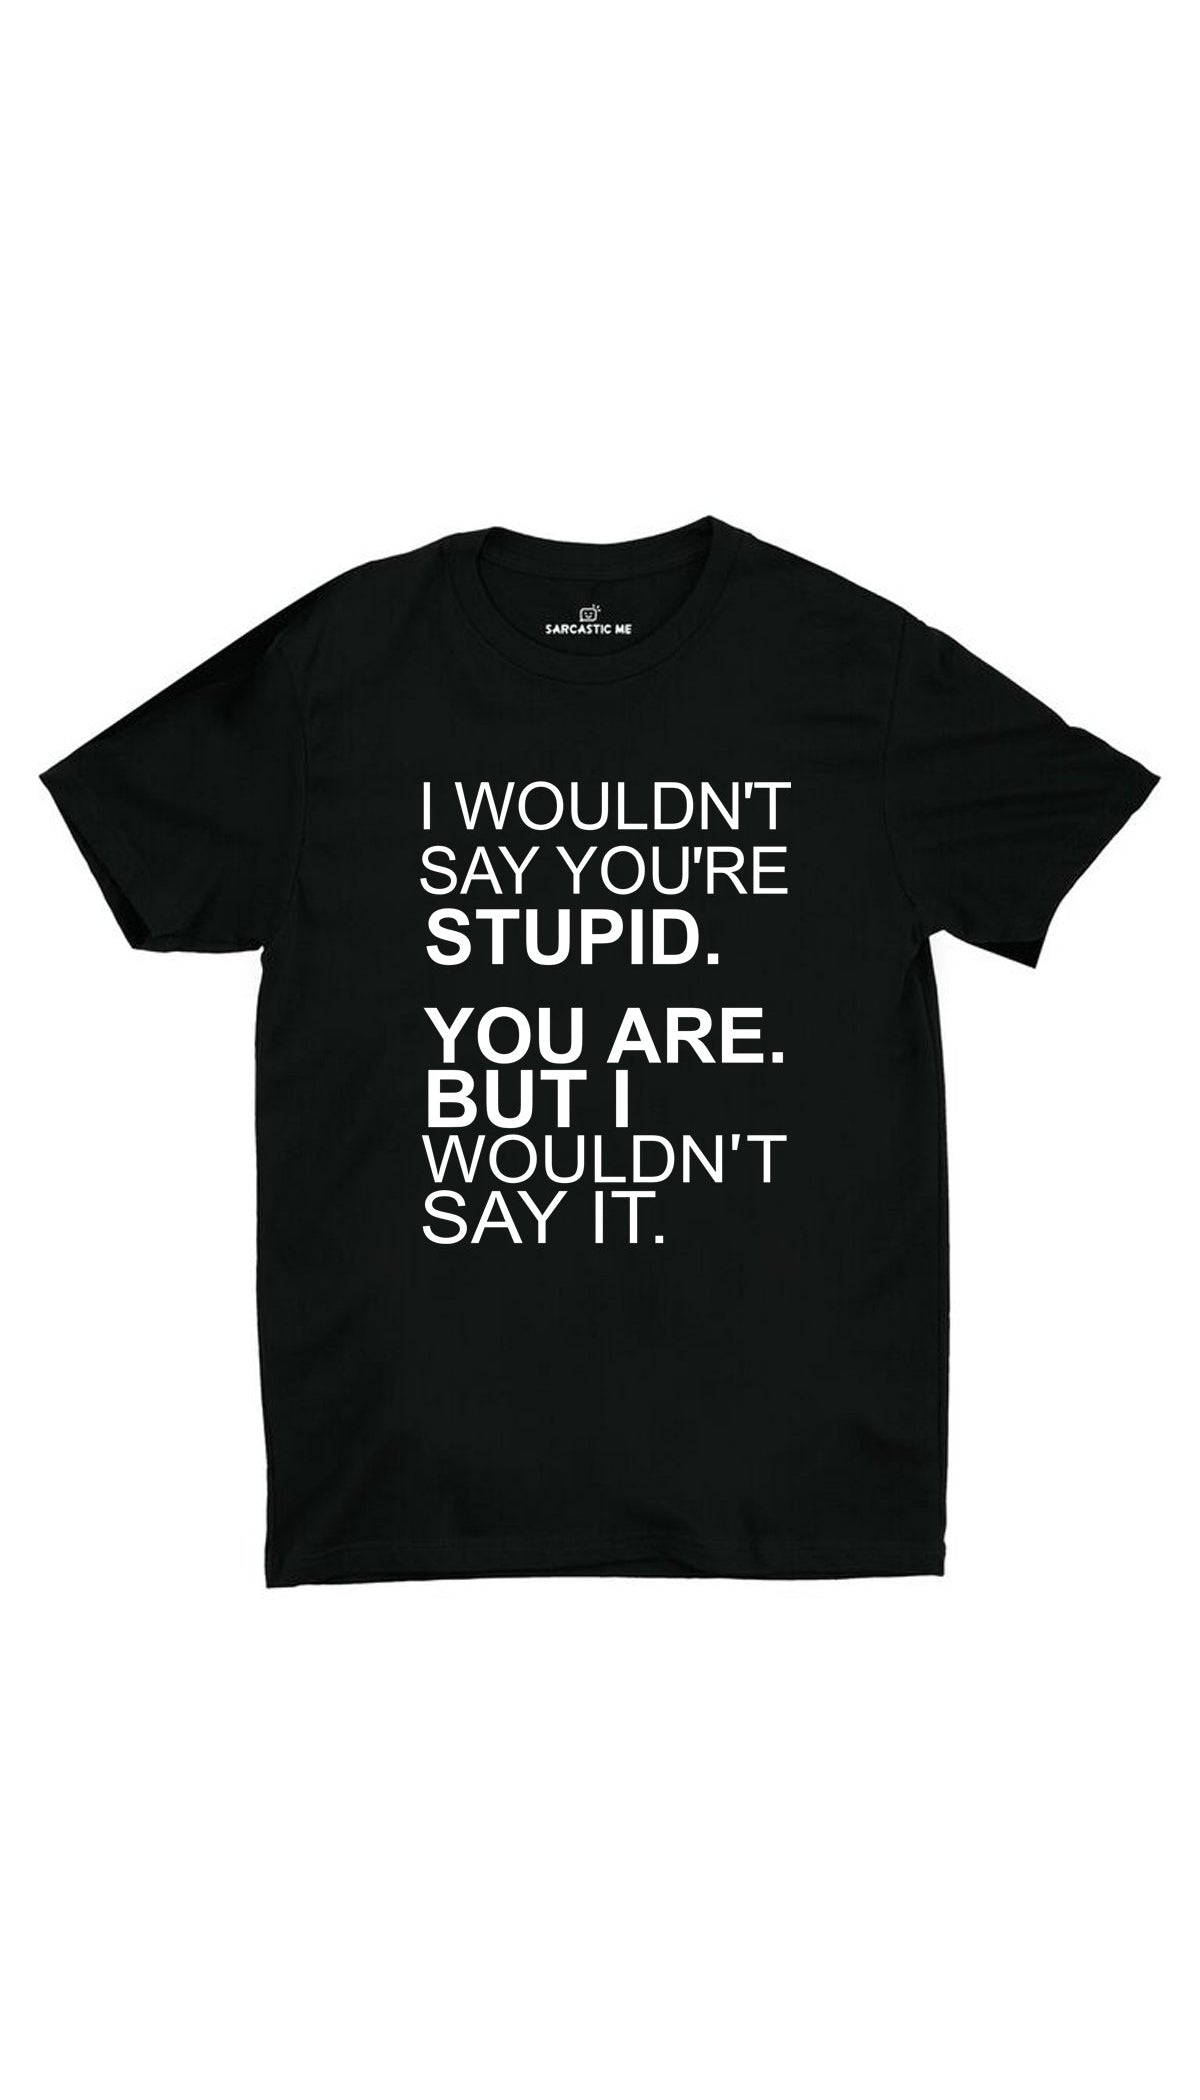 I Wouldn't Say You're Stupid Black Unisex T-Shirt | Sarcastic ME